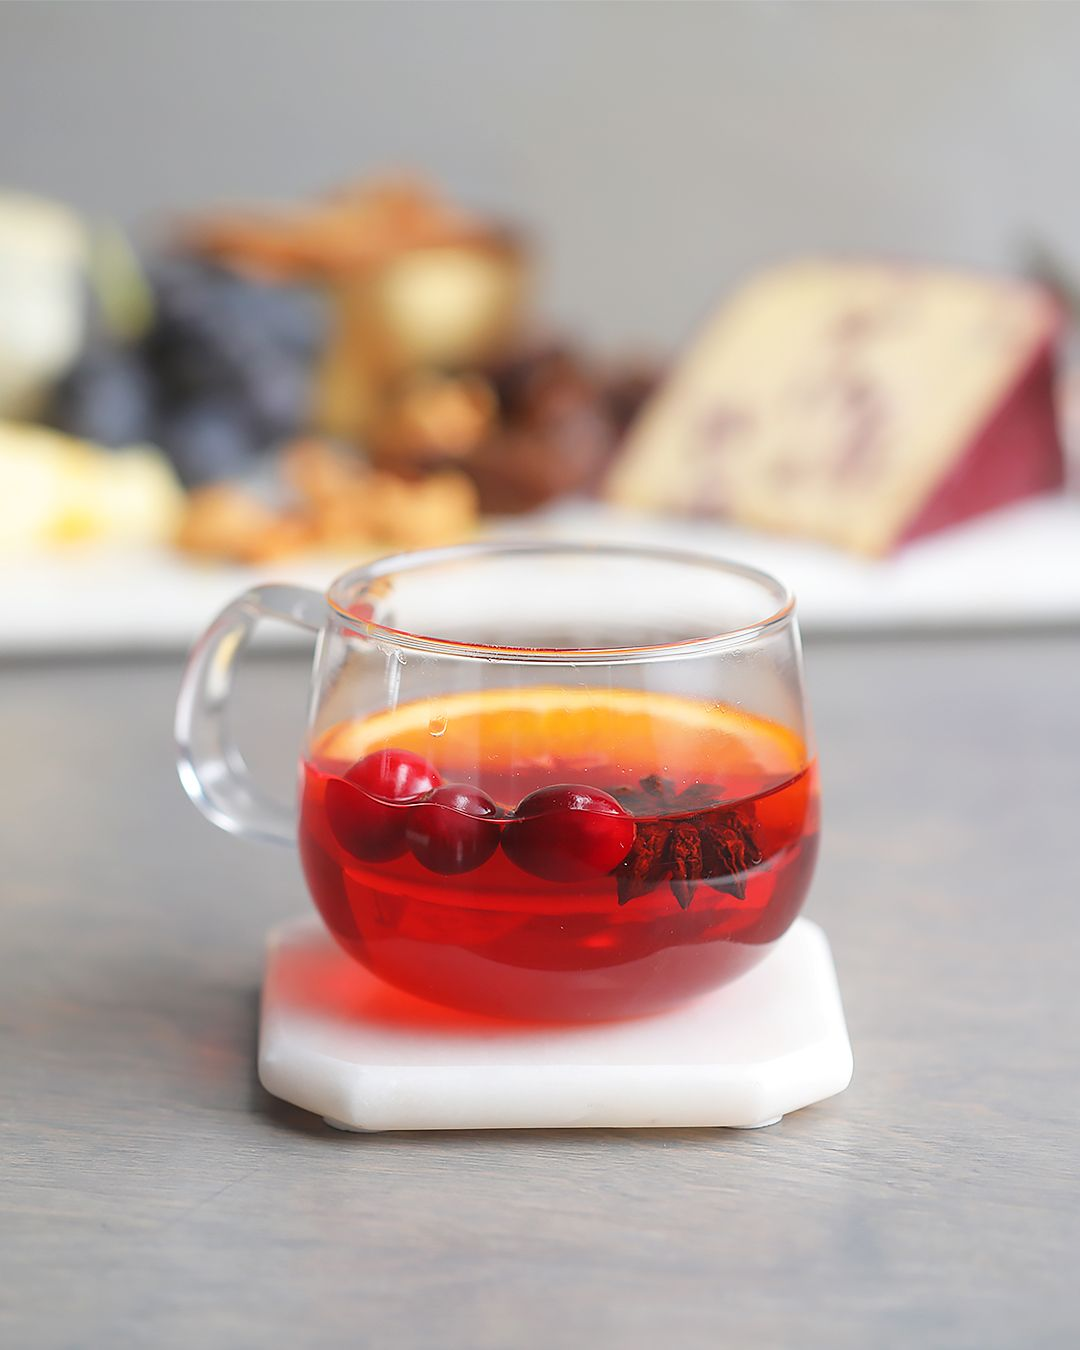 Cranberry Mulled Wine Christmas Drinks Sweet Drinks Mixed Drinks Alcohol